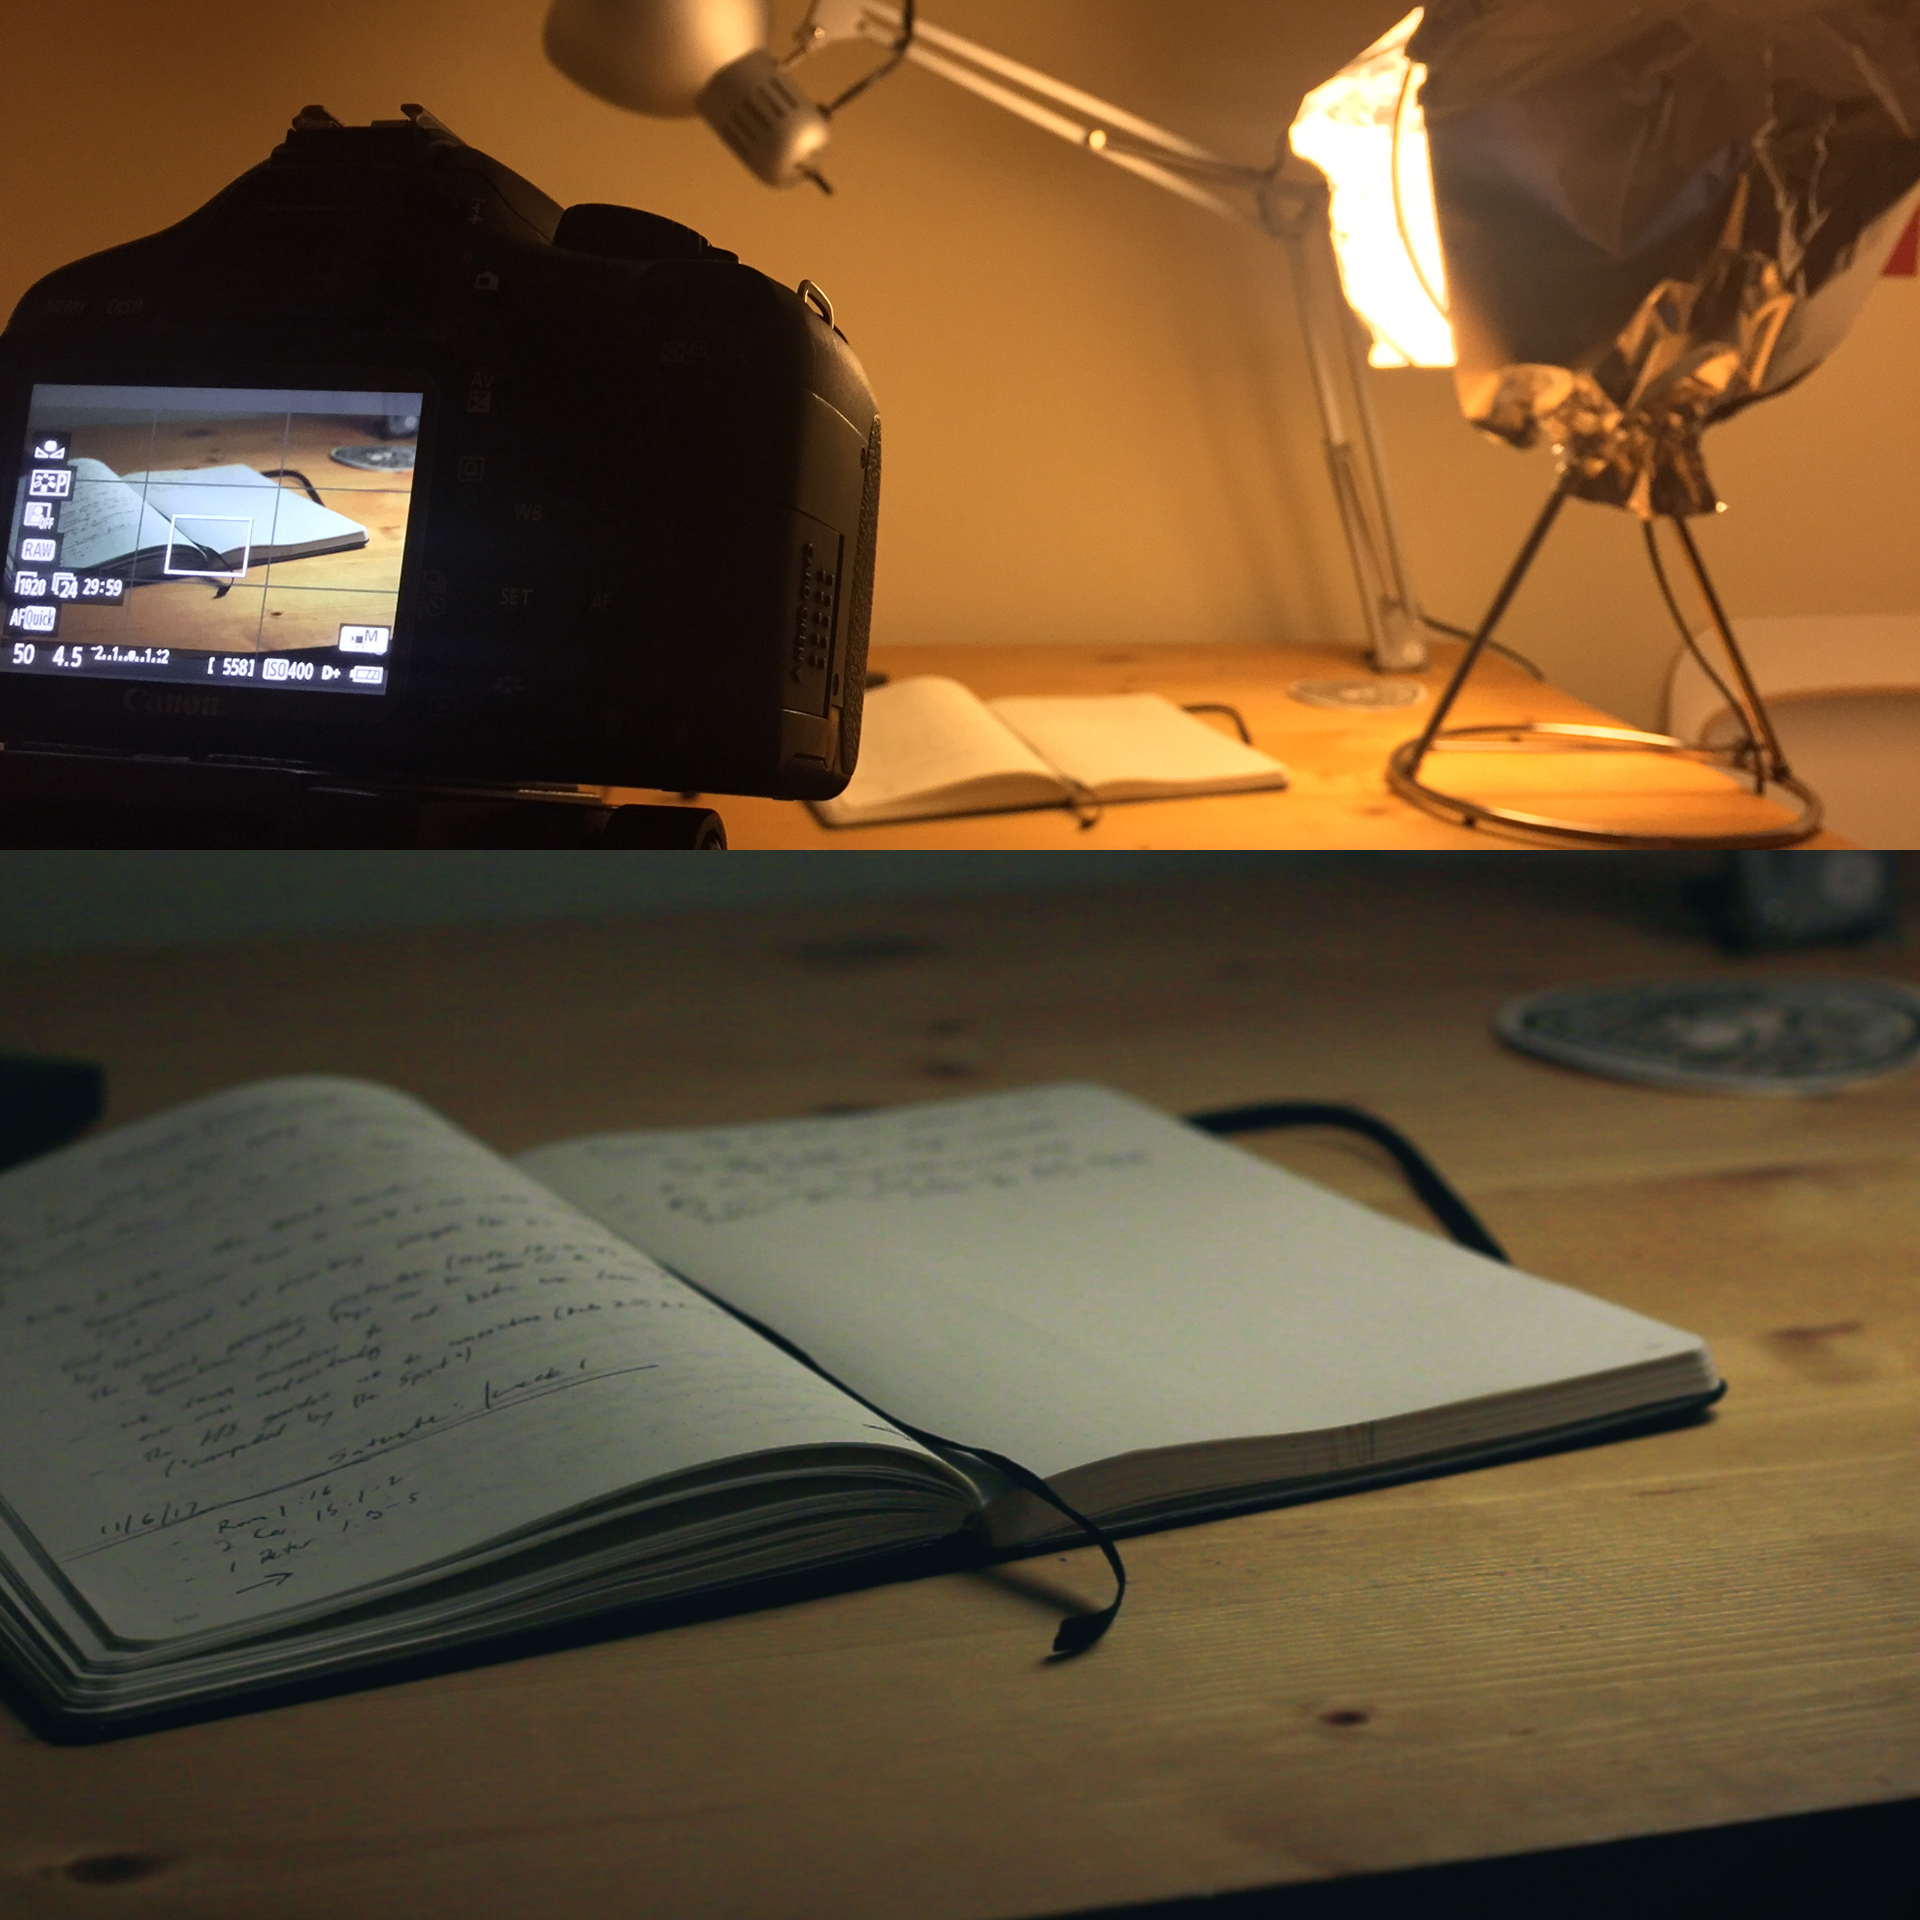 LightingSetup_2.jpg